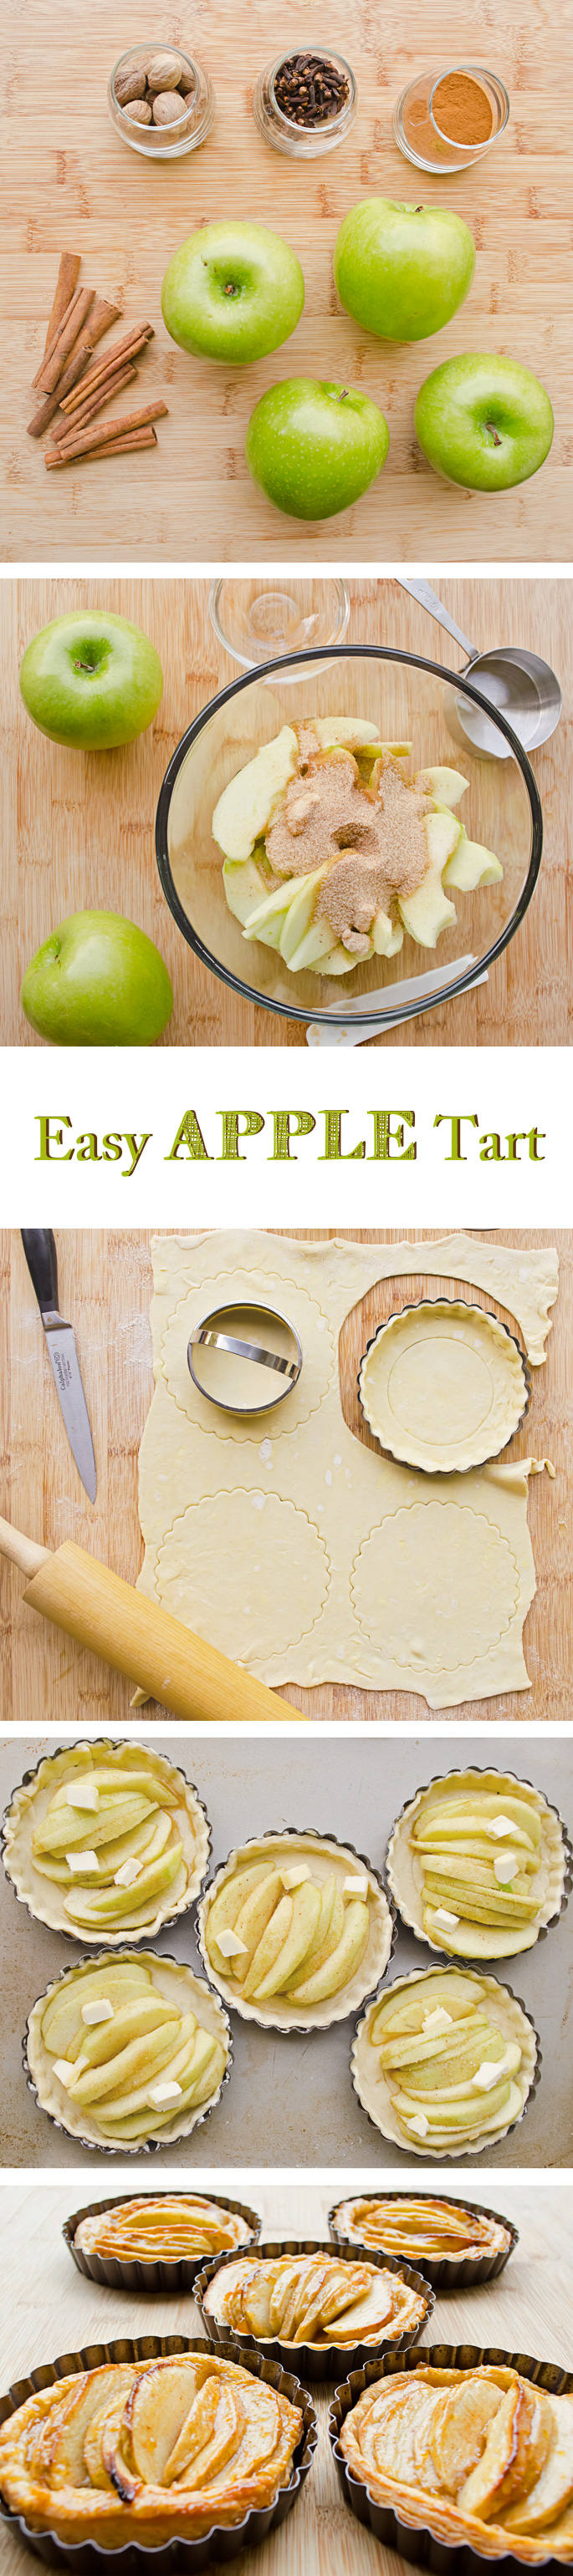 Easy Apple Tart Recipe With Step By